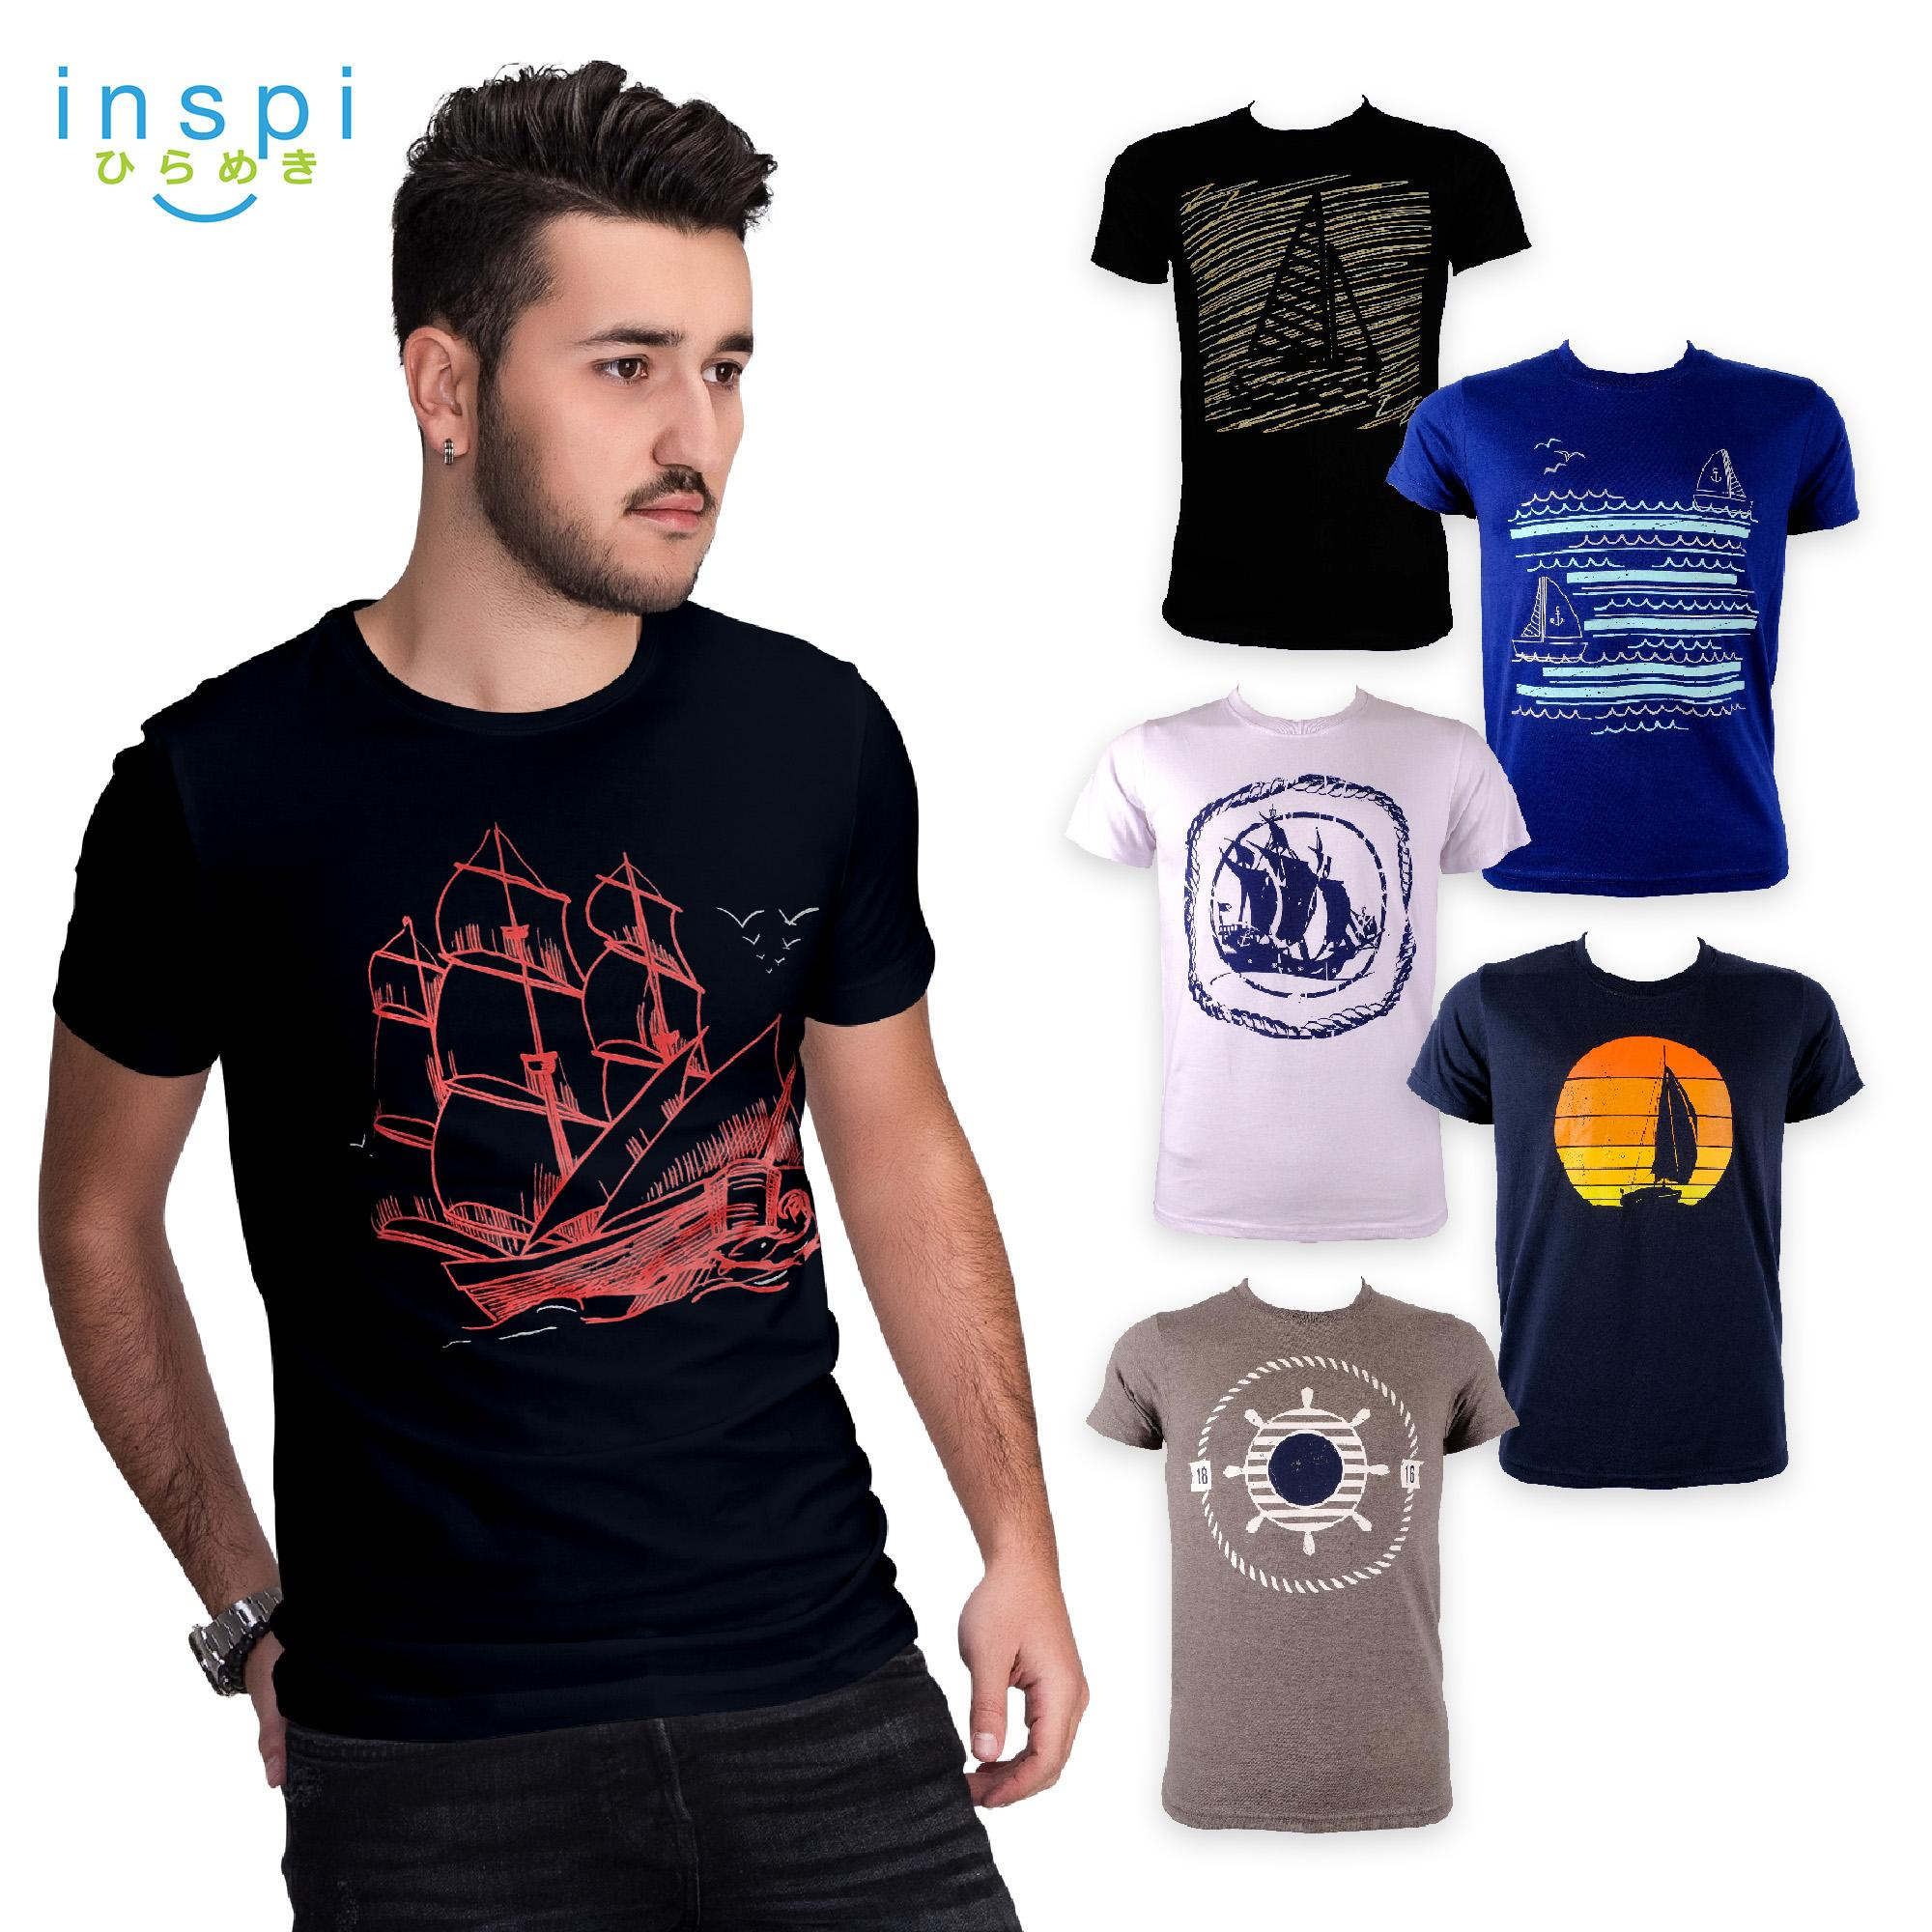 793aec860846 INSPI Tees Sailing Collection tshirt printed graphic tee Mens t shirt  shirts for men tshirts sale